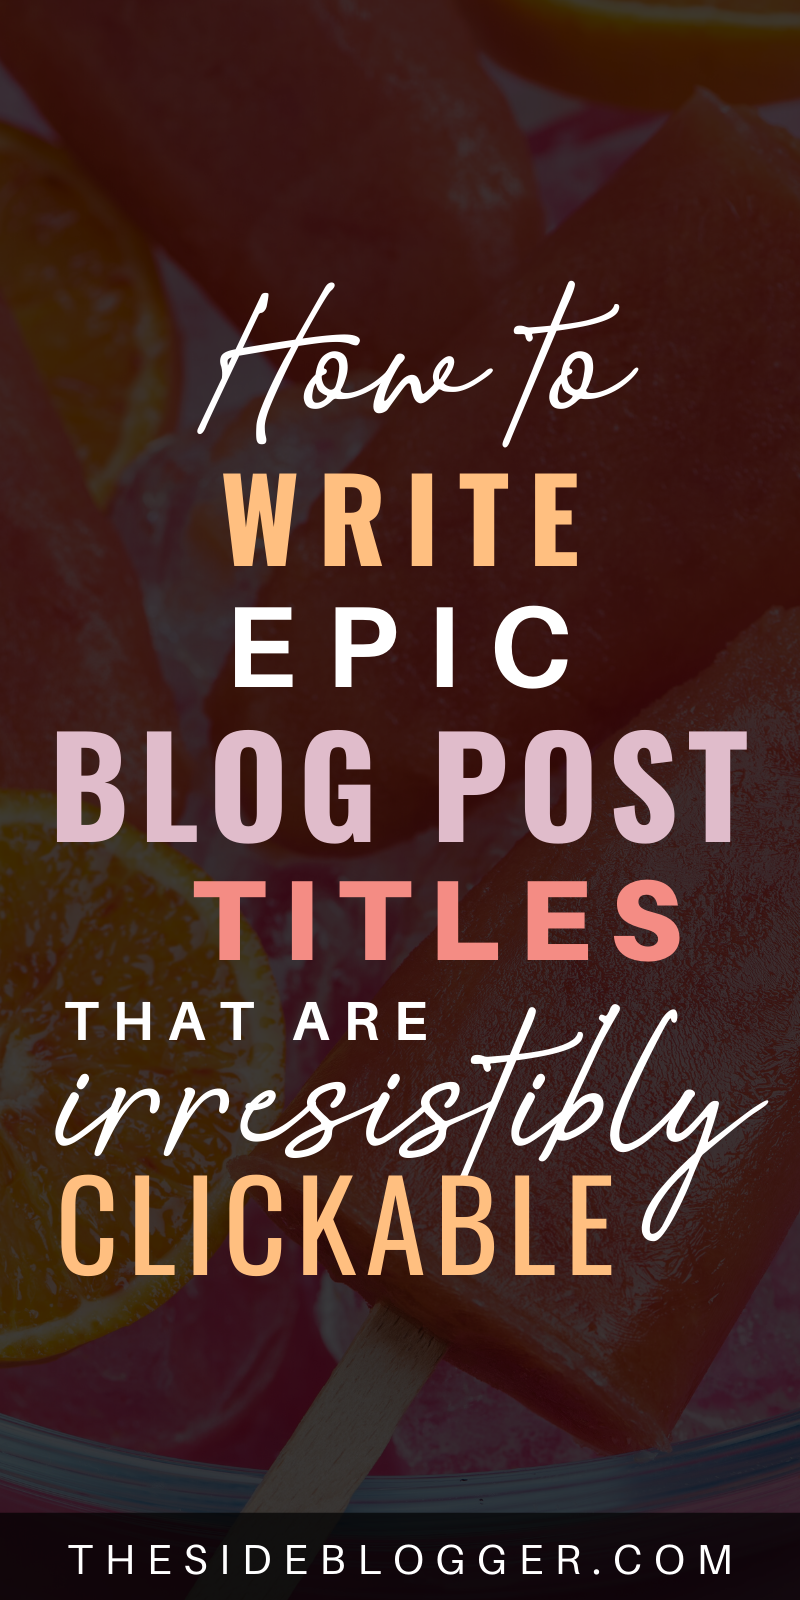 How to Write Epic Blog Post Titles That Everyone Wants to Read and Share